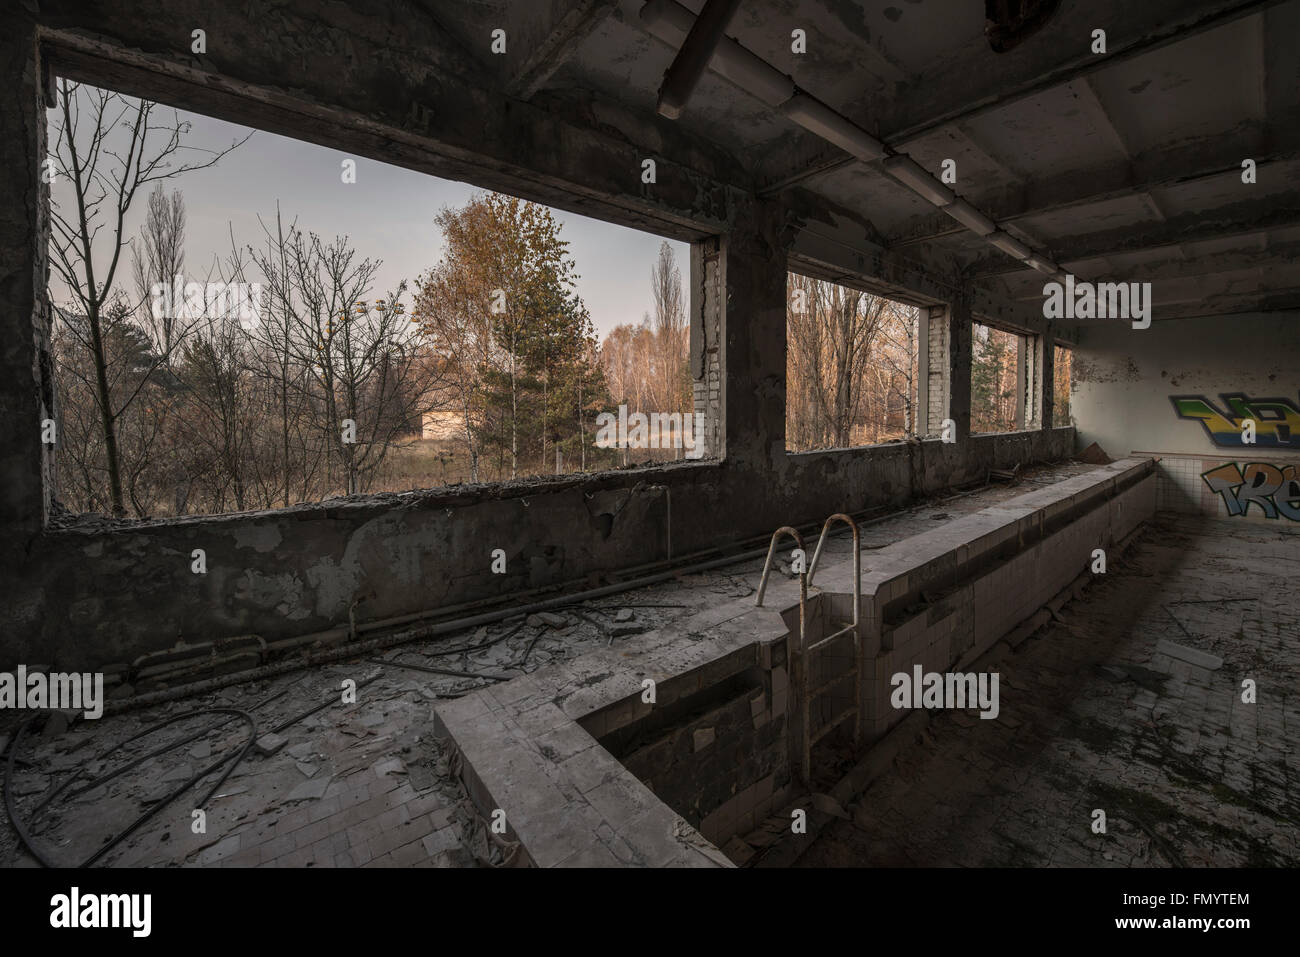 Swimming pool overlooking iconic ferris wheel in Pripyat, Chernobyl scene of 1986 nuclear disaster - Stock Image